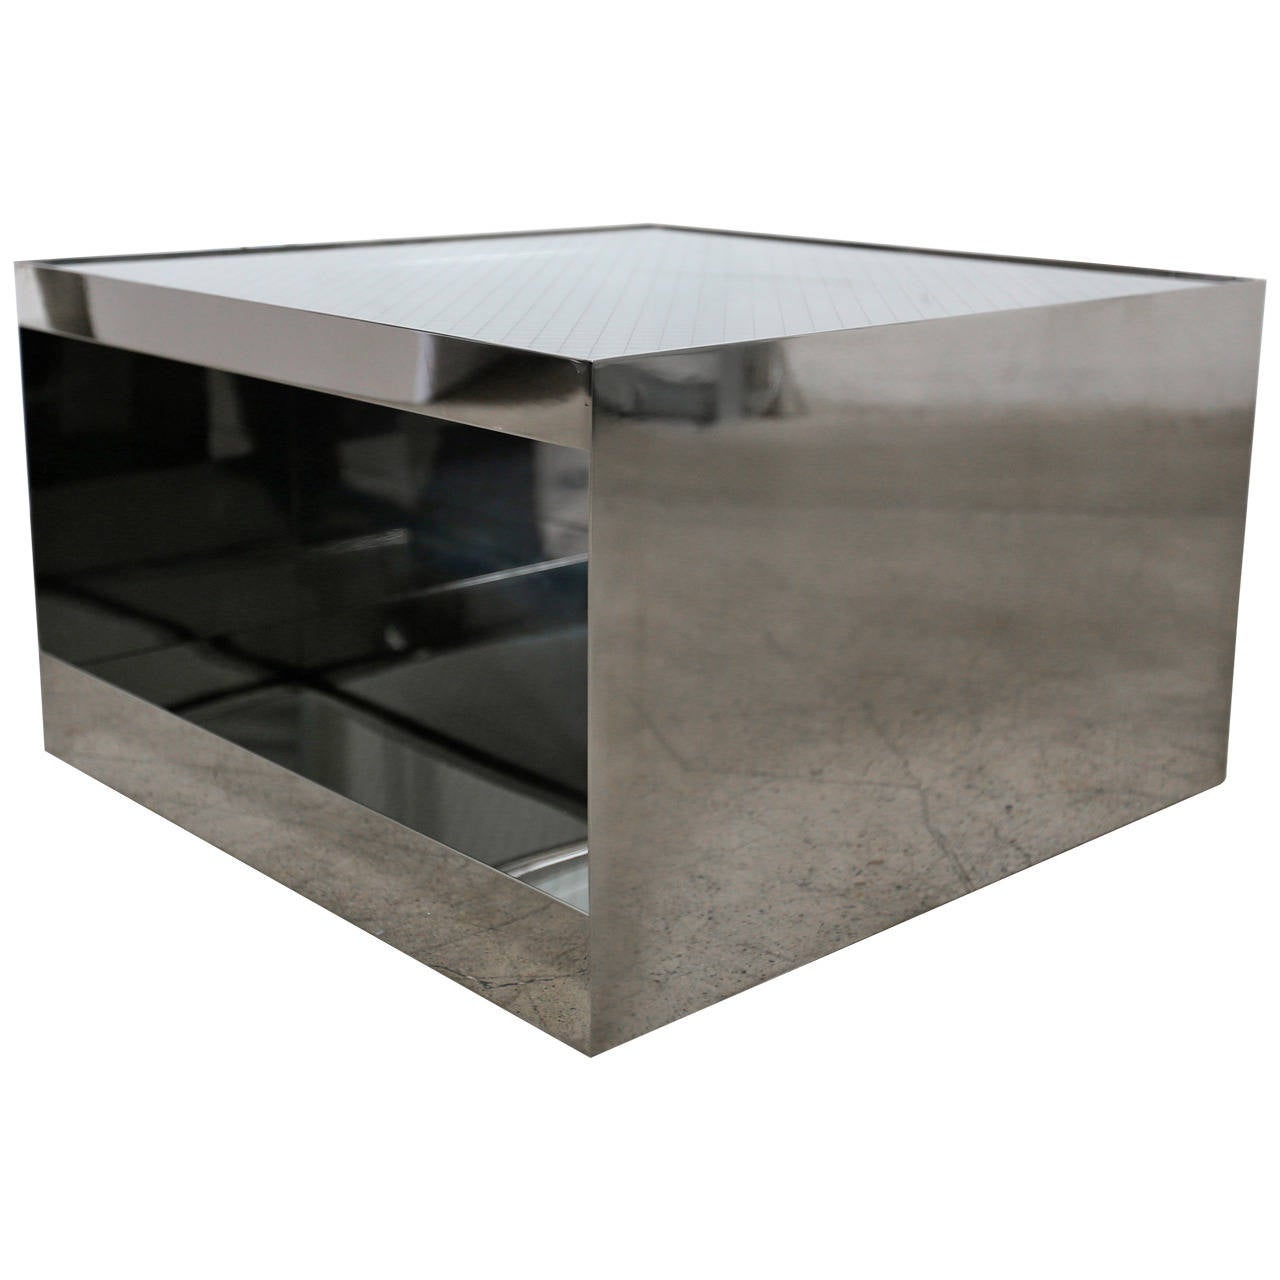 Stainless Steel Table by Joe D\u0027urso for Knoll For Sale at 1stdibs